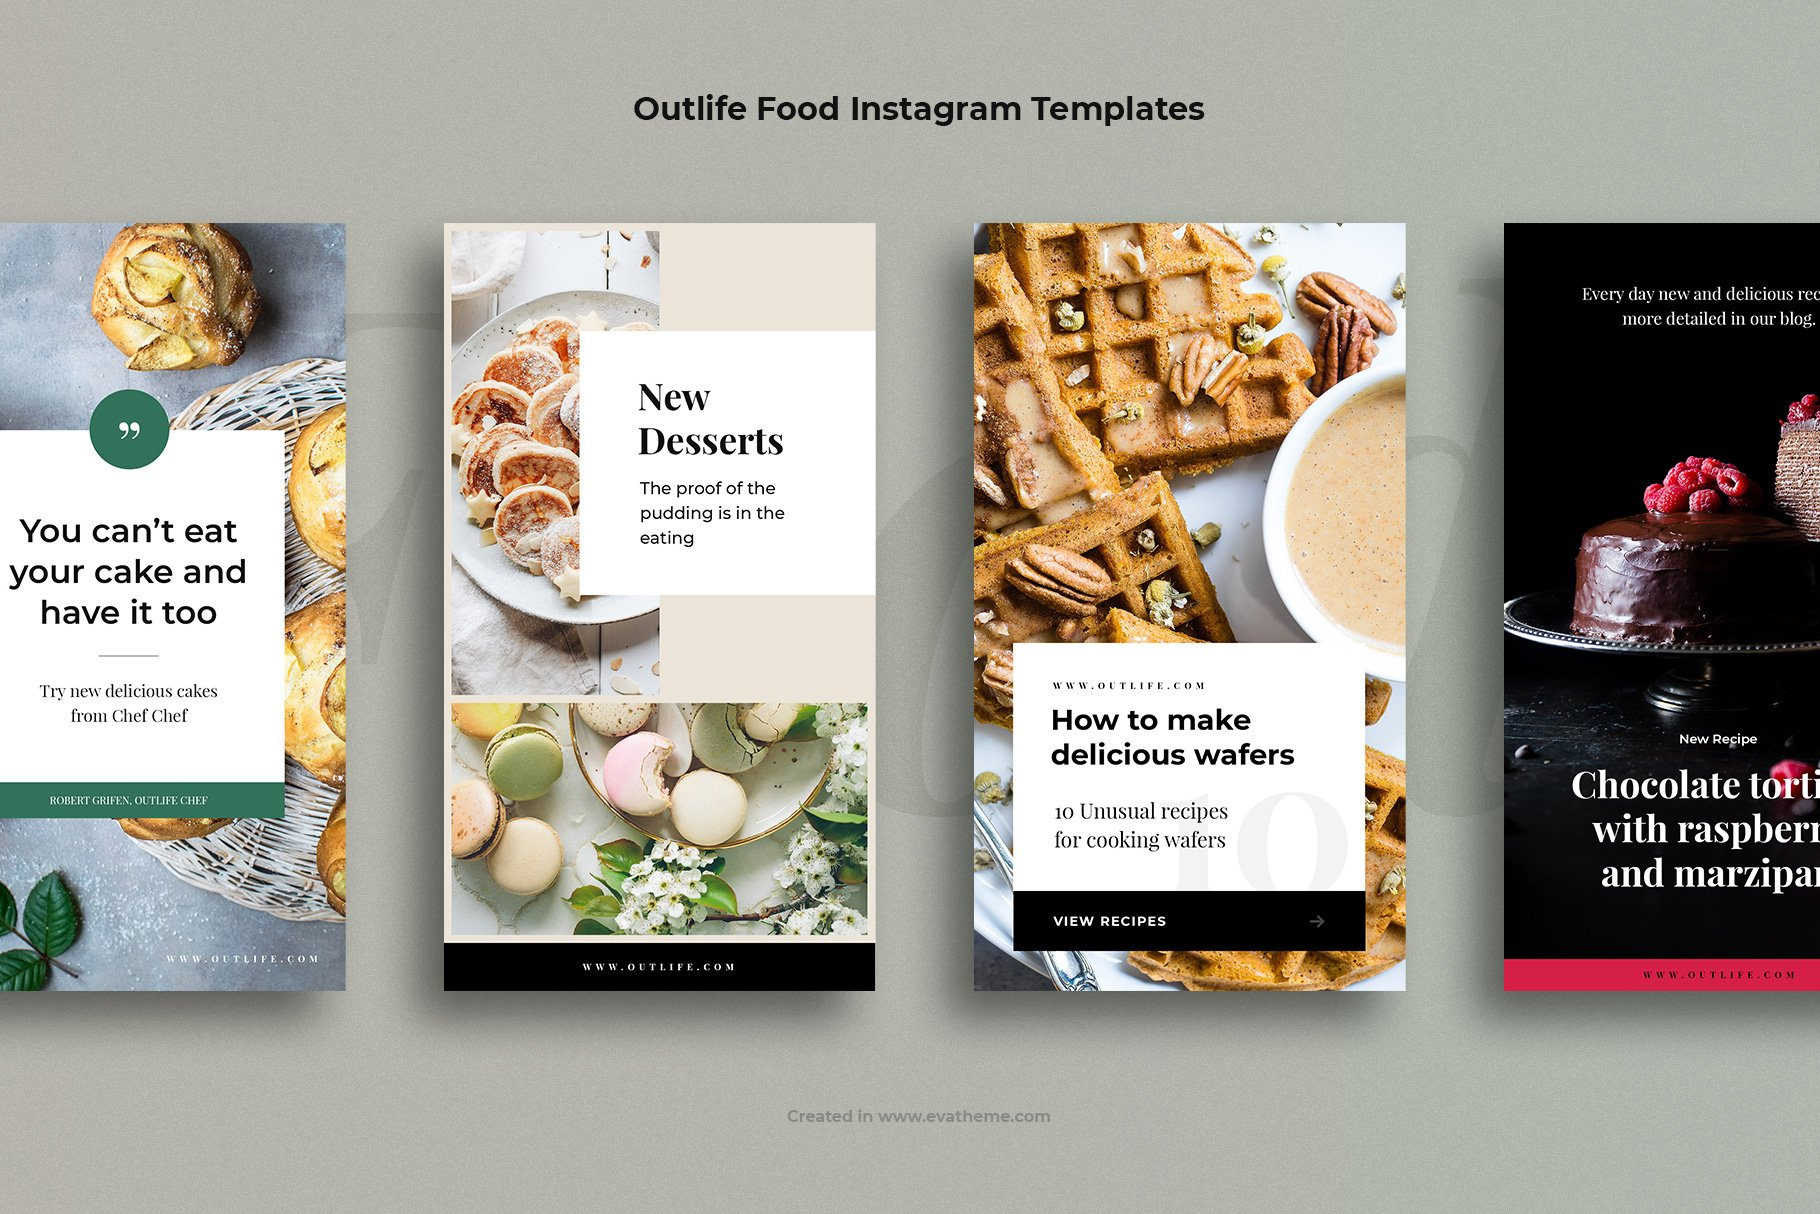 Outlife Food Instagram Templates example image 3